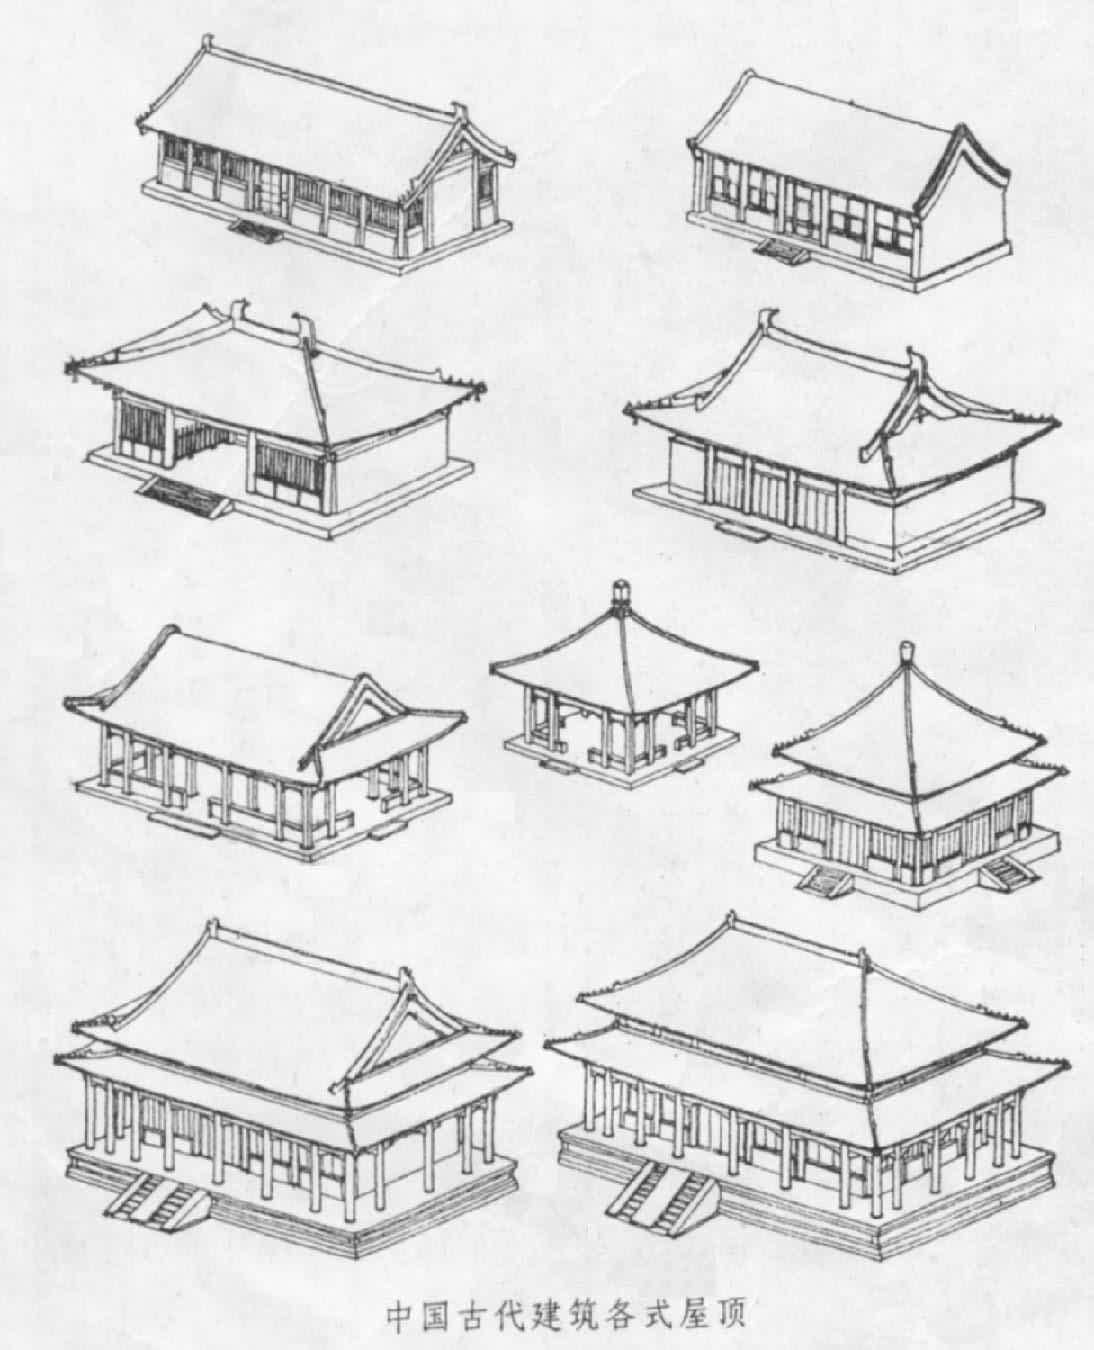 the modern chinese architecture lost cultural studies essay Download citation on researchgate | cultural studies in china: towards closing the gap between elite culture and popular culture | this essay deals with cultural studies, including elite culture and its products  based on an outline of the major transformations in modern chinese children's literature throughout the past 100 years,.